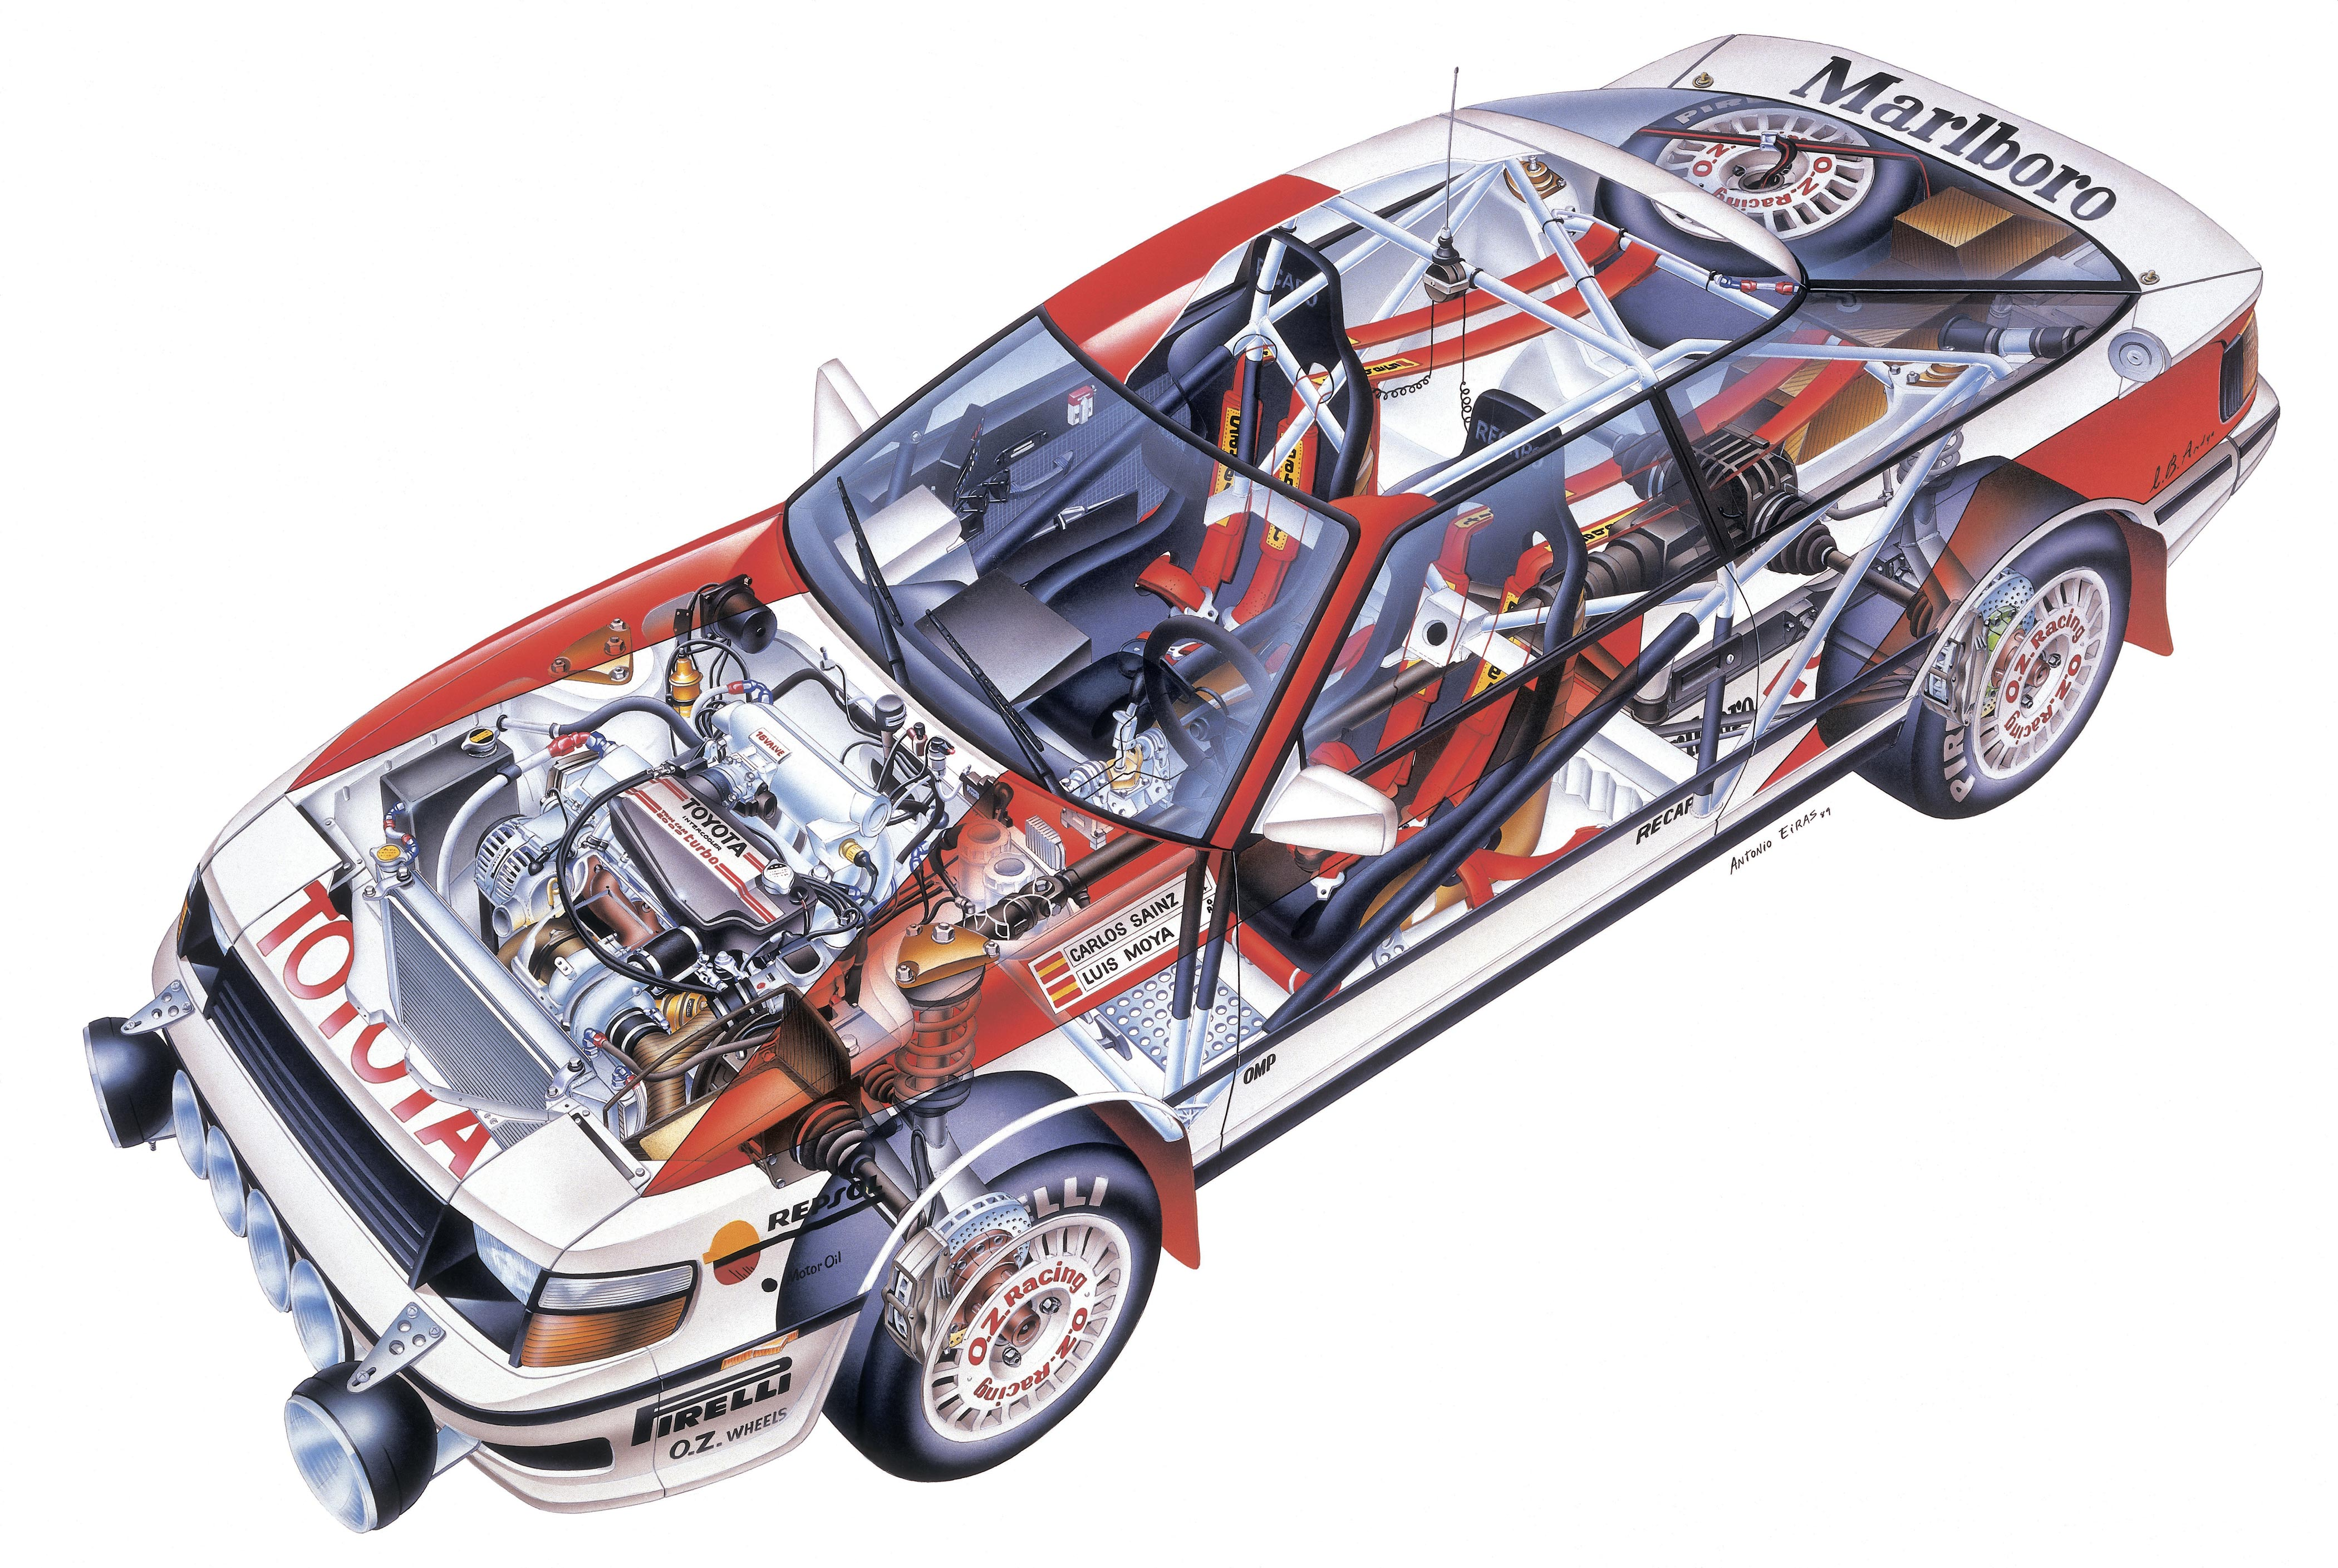 Toyota Celica Turbo 4WD Group А cutaway drawing